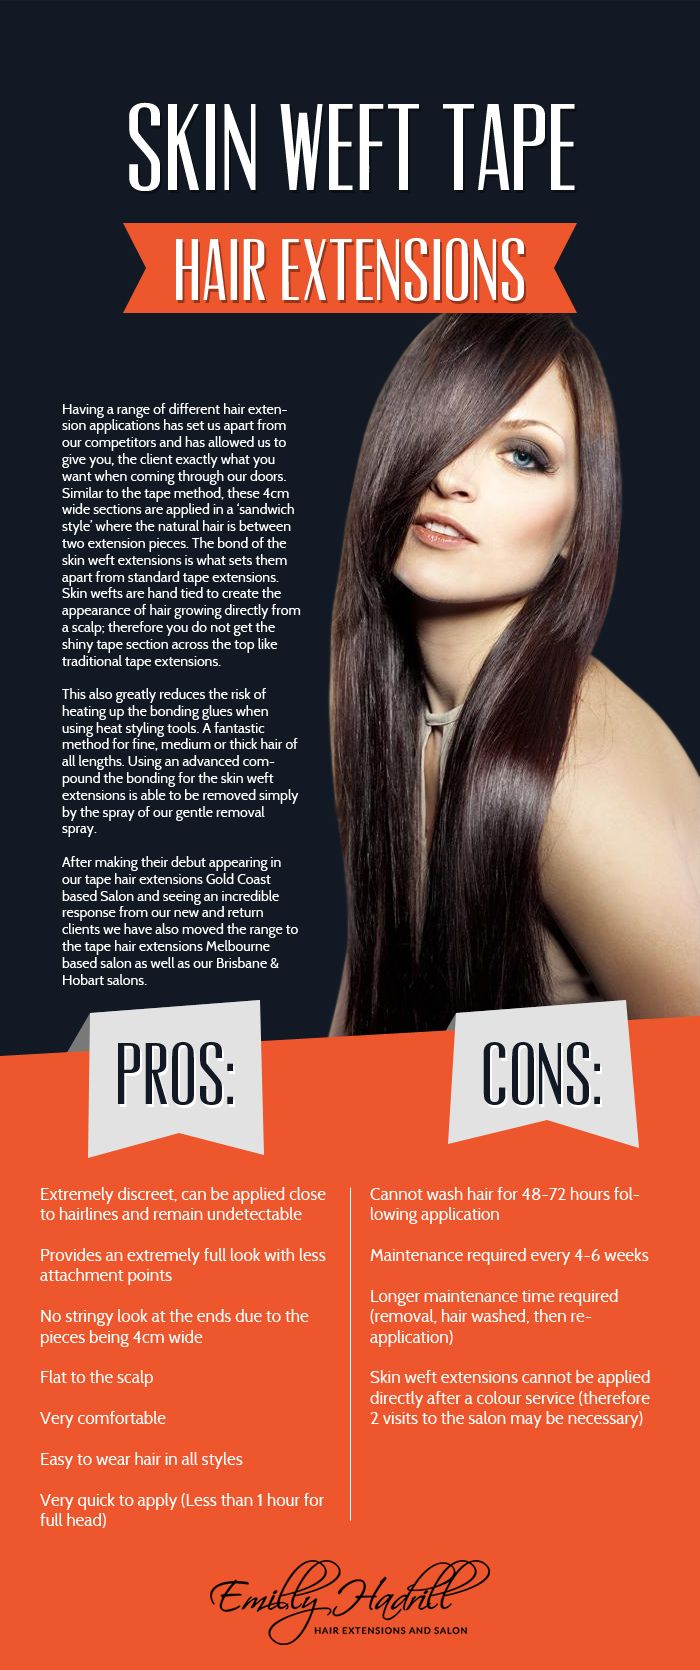 If You Want Premium Quality Skin Weft Tape Hair Extensions Then